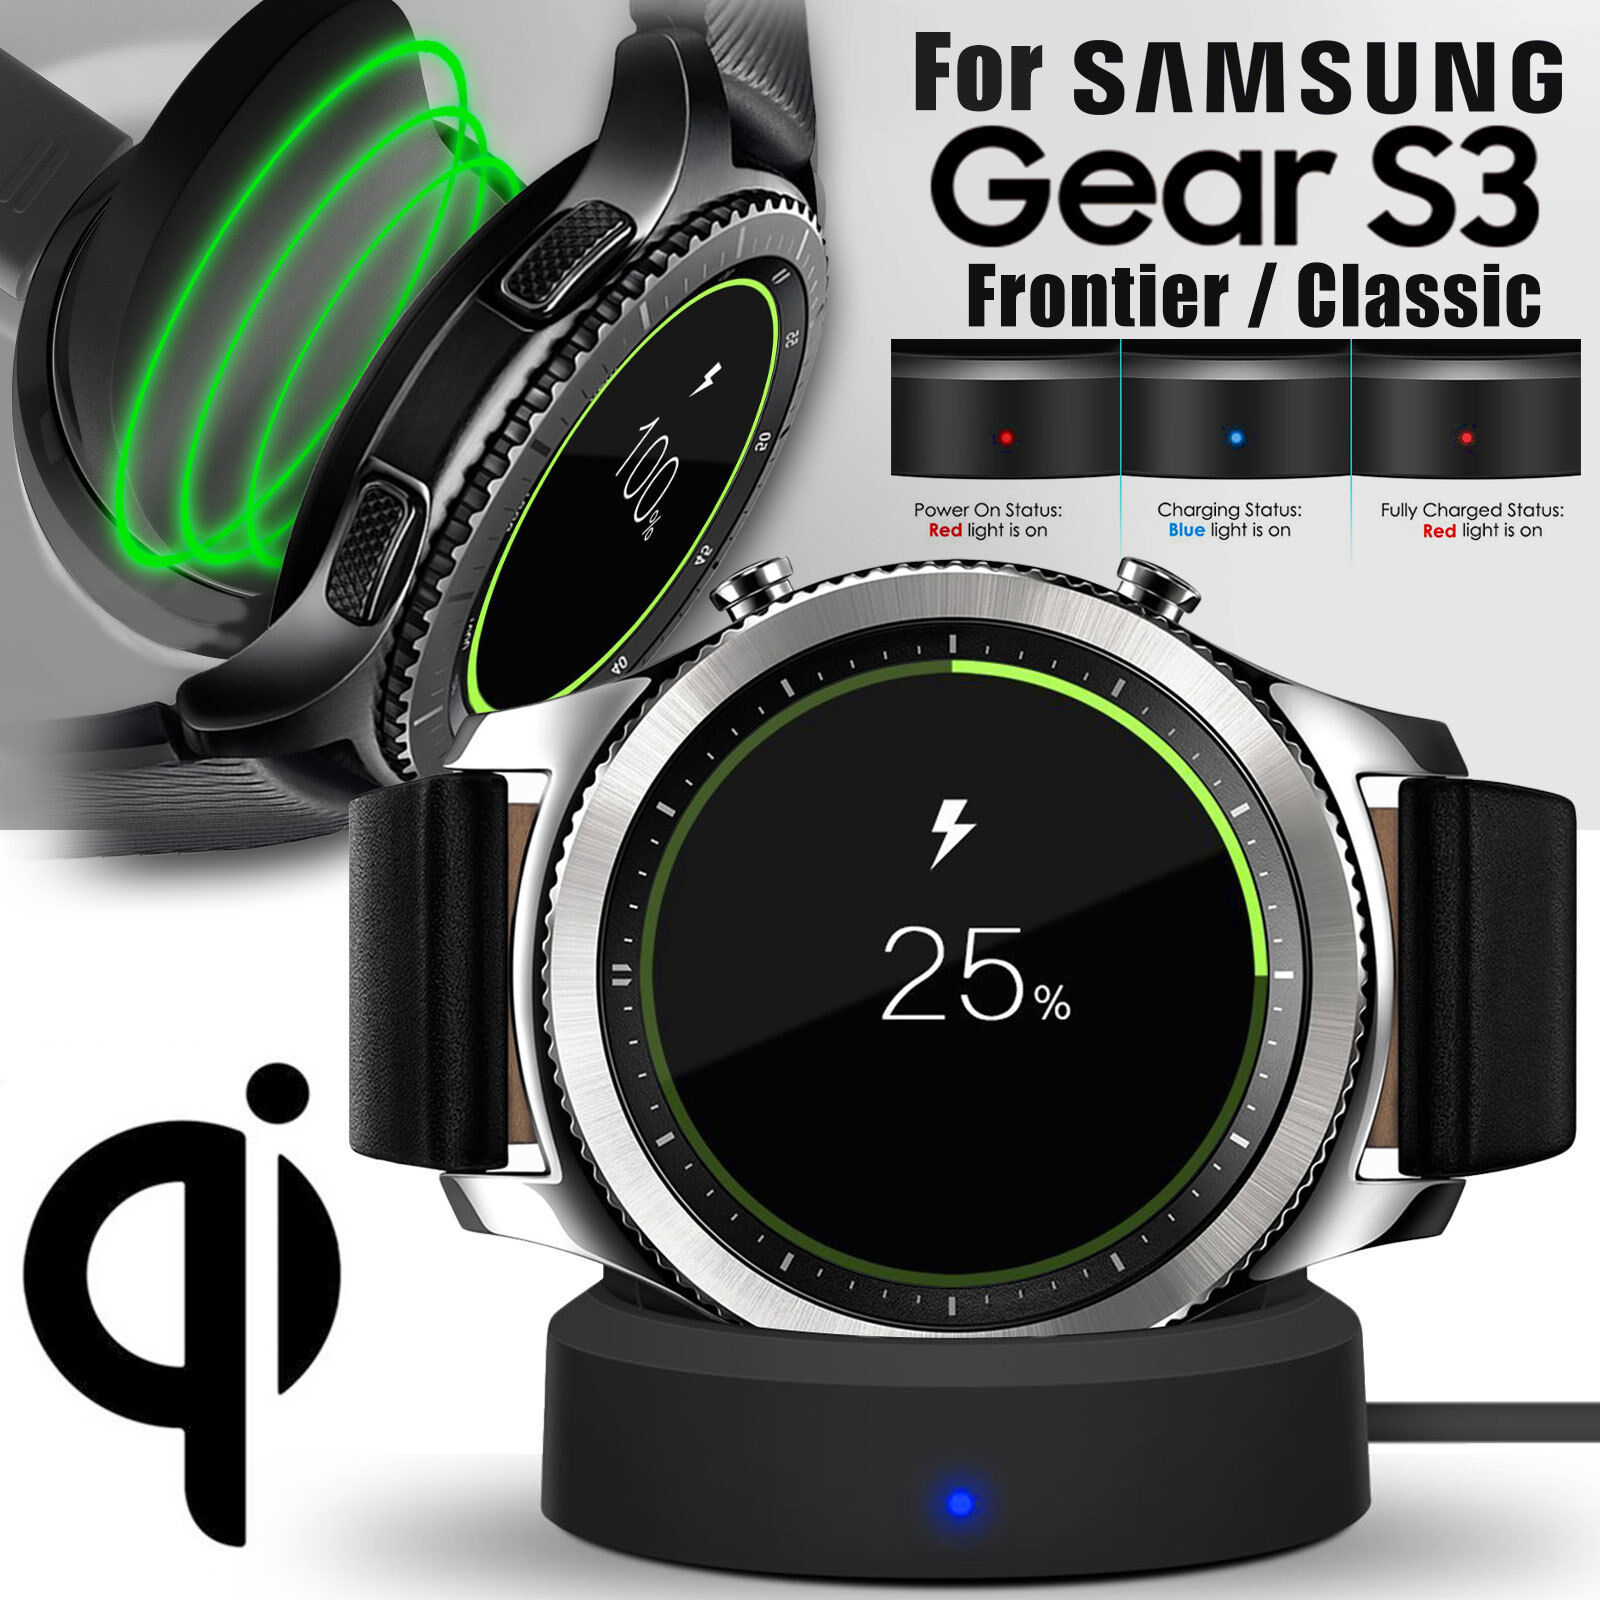 Wireless Charging Dock Cradle Charger Kit For Samsung Gear